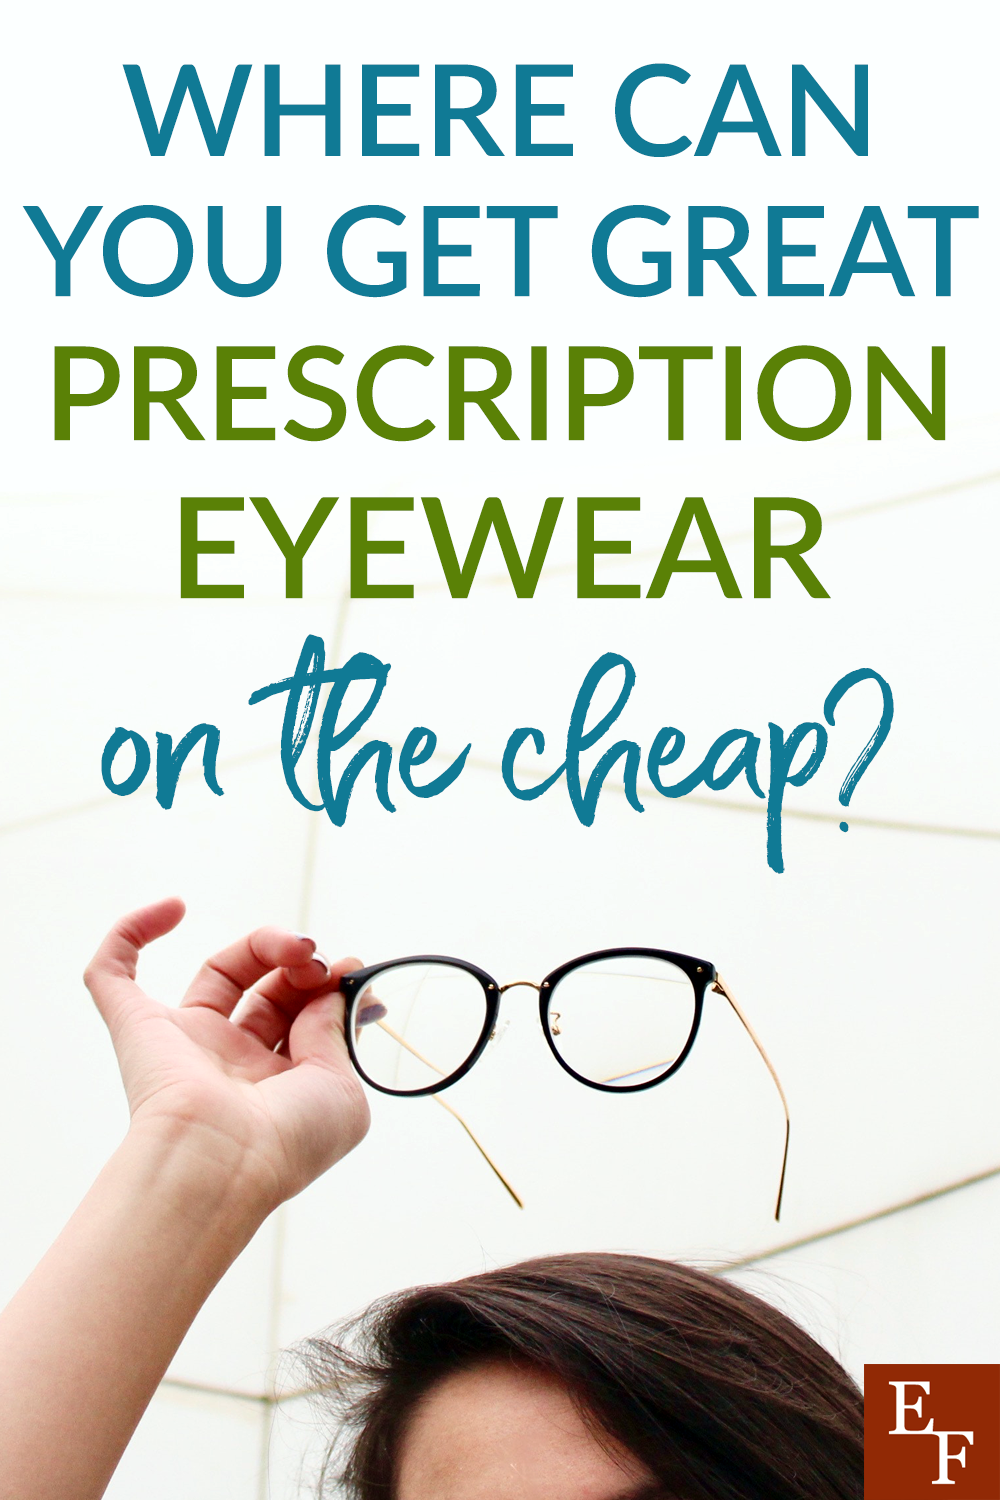 If you are like me, and have to wear prescription eyewear daily, but don't want to break the bank, then this is a great solution.